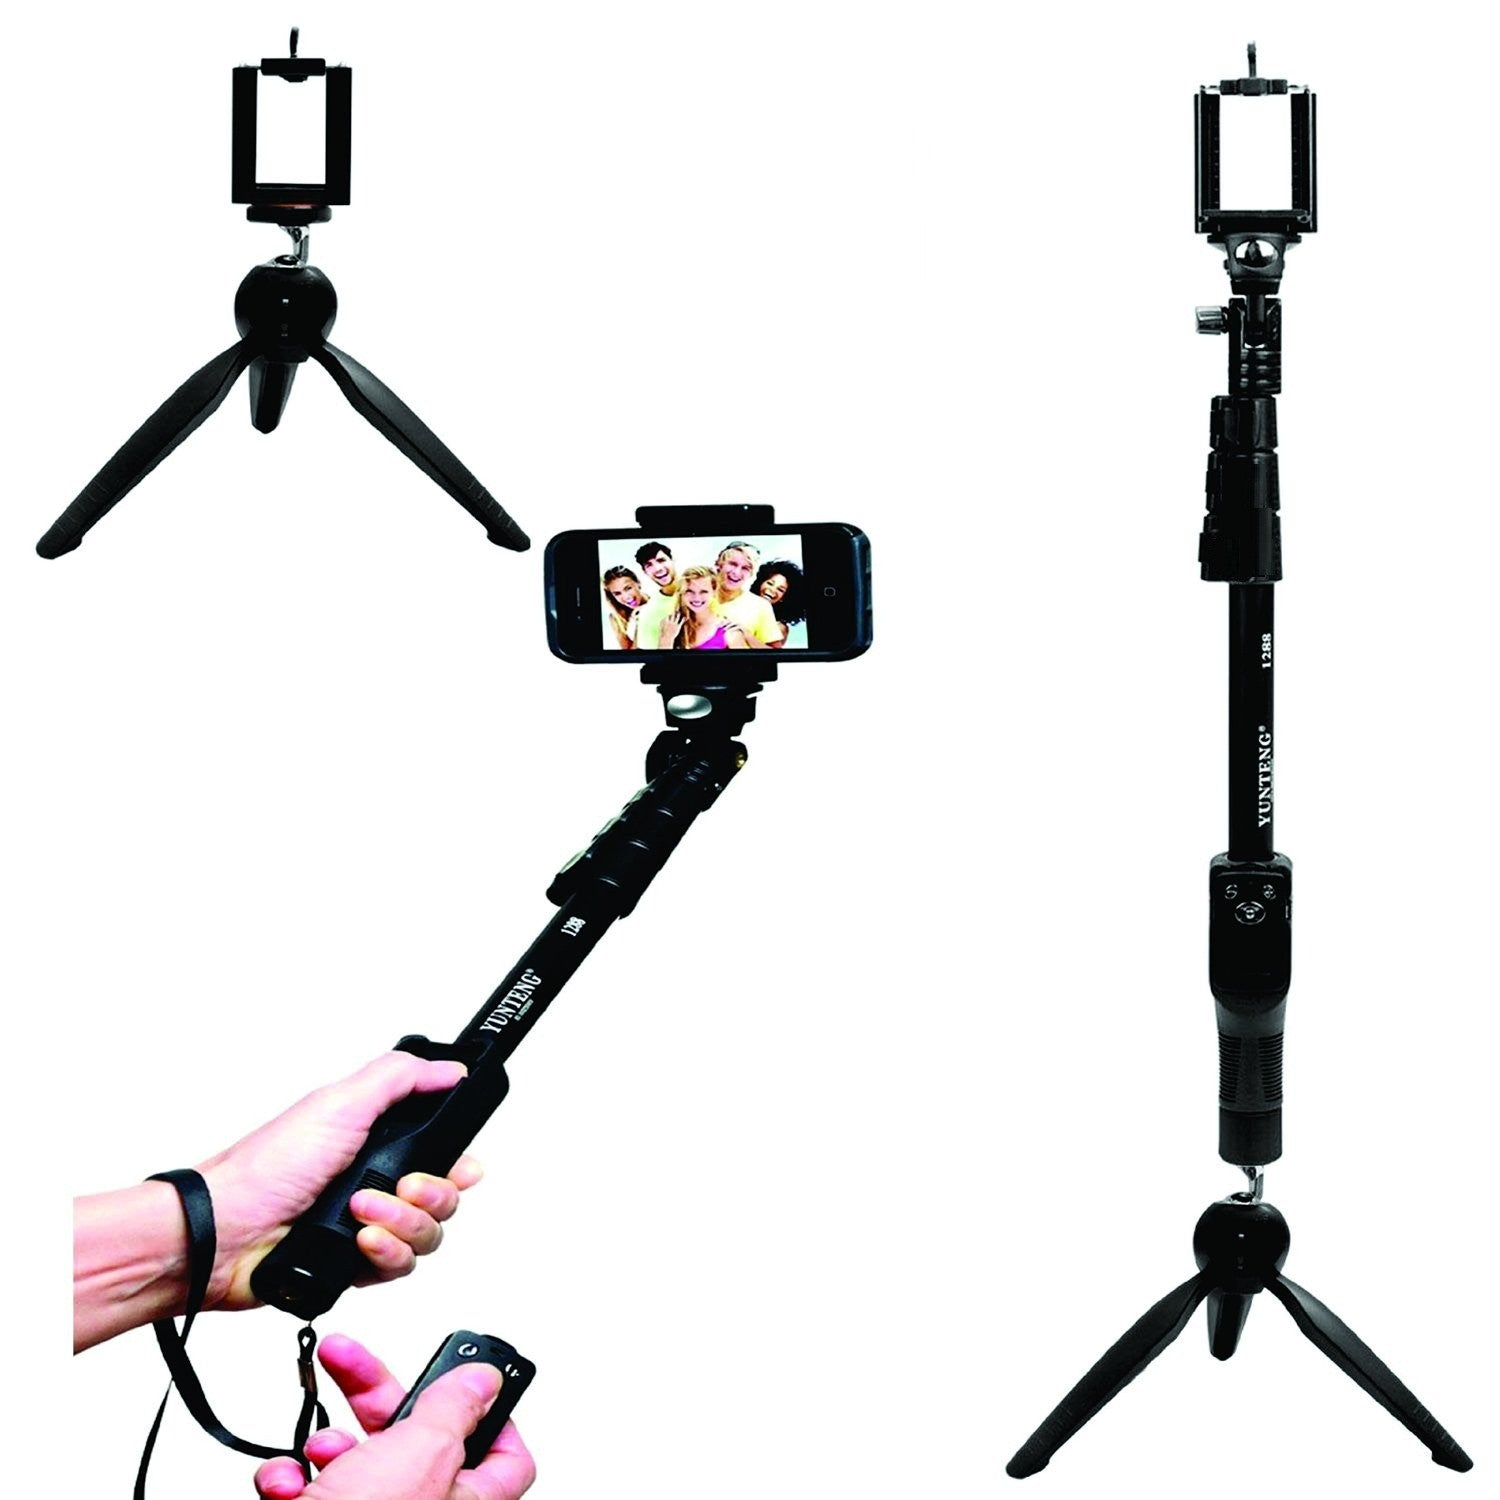 Yunteng YT 1288 2 In 1 Adjustable Selfie Stick Monopod & YunTeng YT 228  Mini Tripod for Smartphones & DSLR Cameras with Bluetooth Remote Shutter